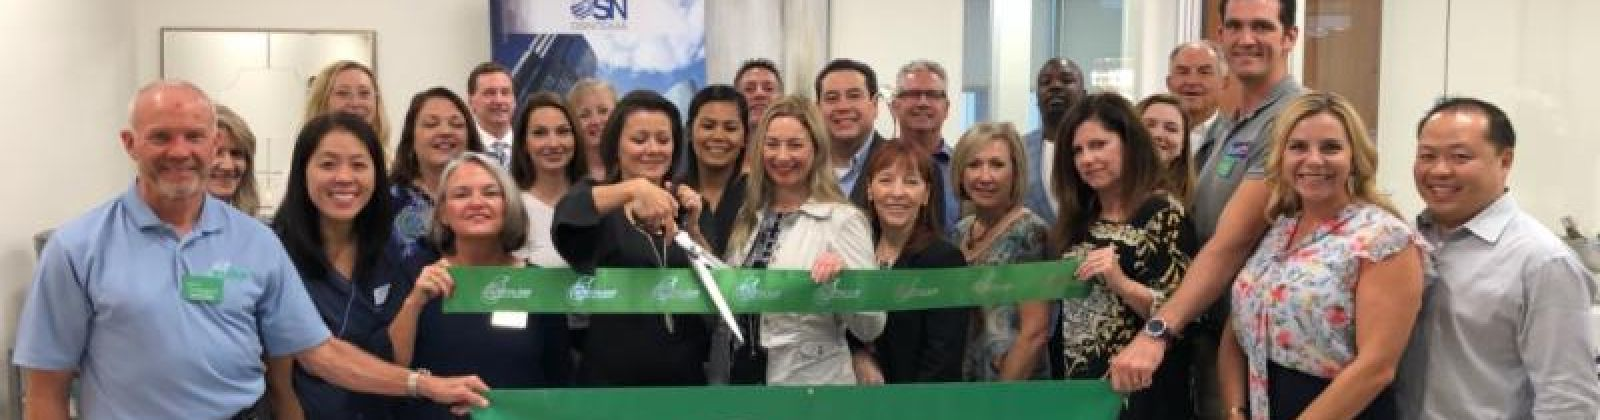 OS National Opens Southlake, Texas Office to Serve the Real Estate Community